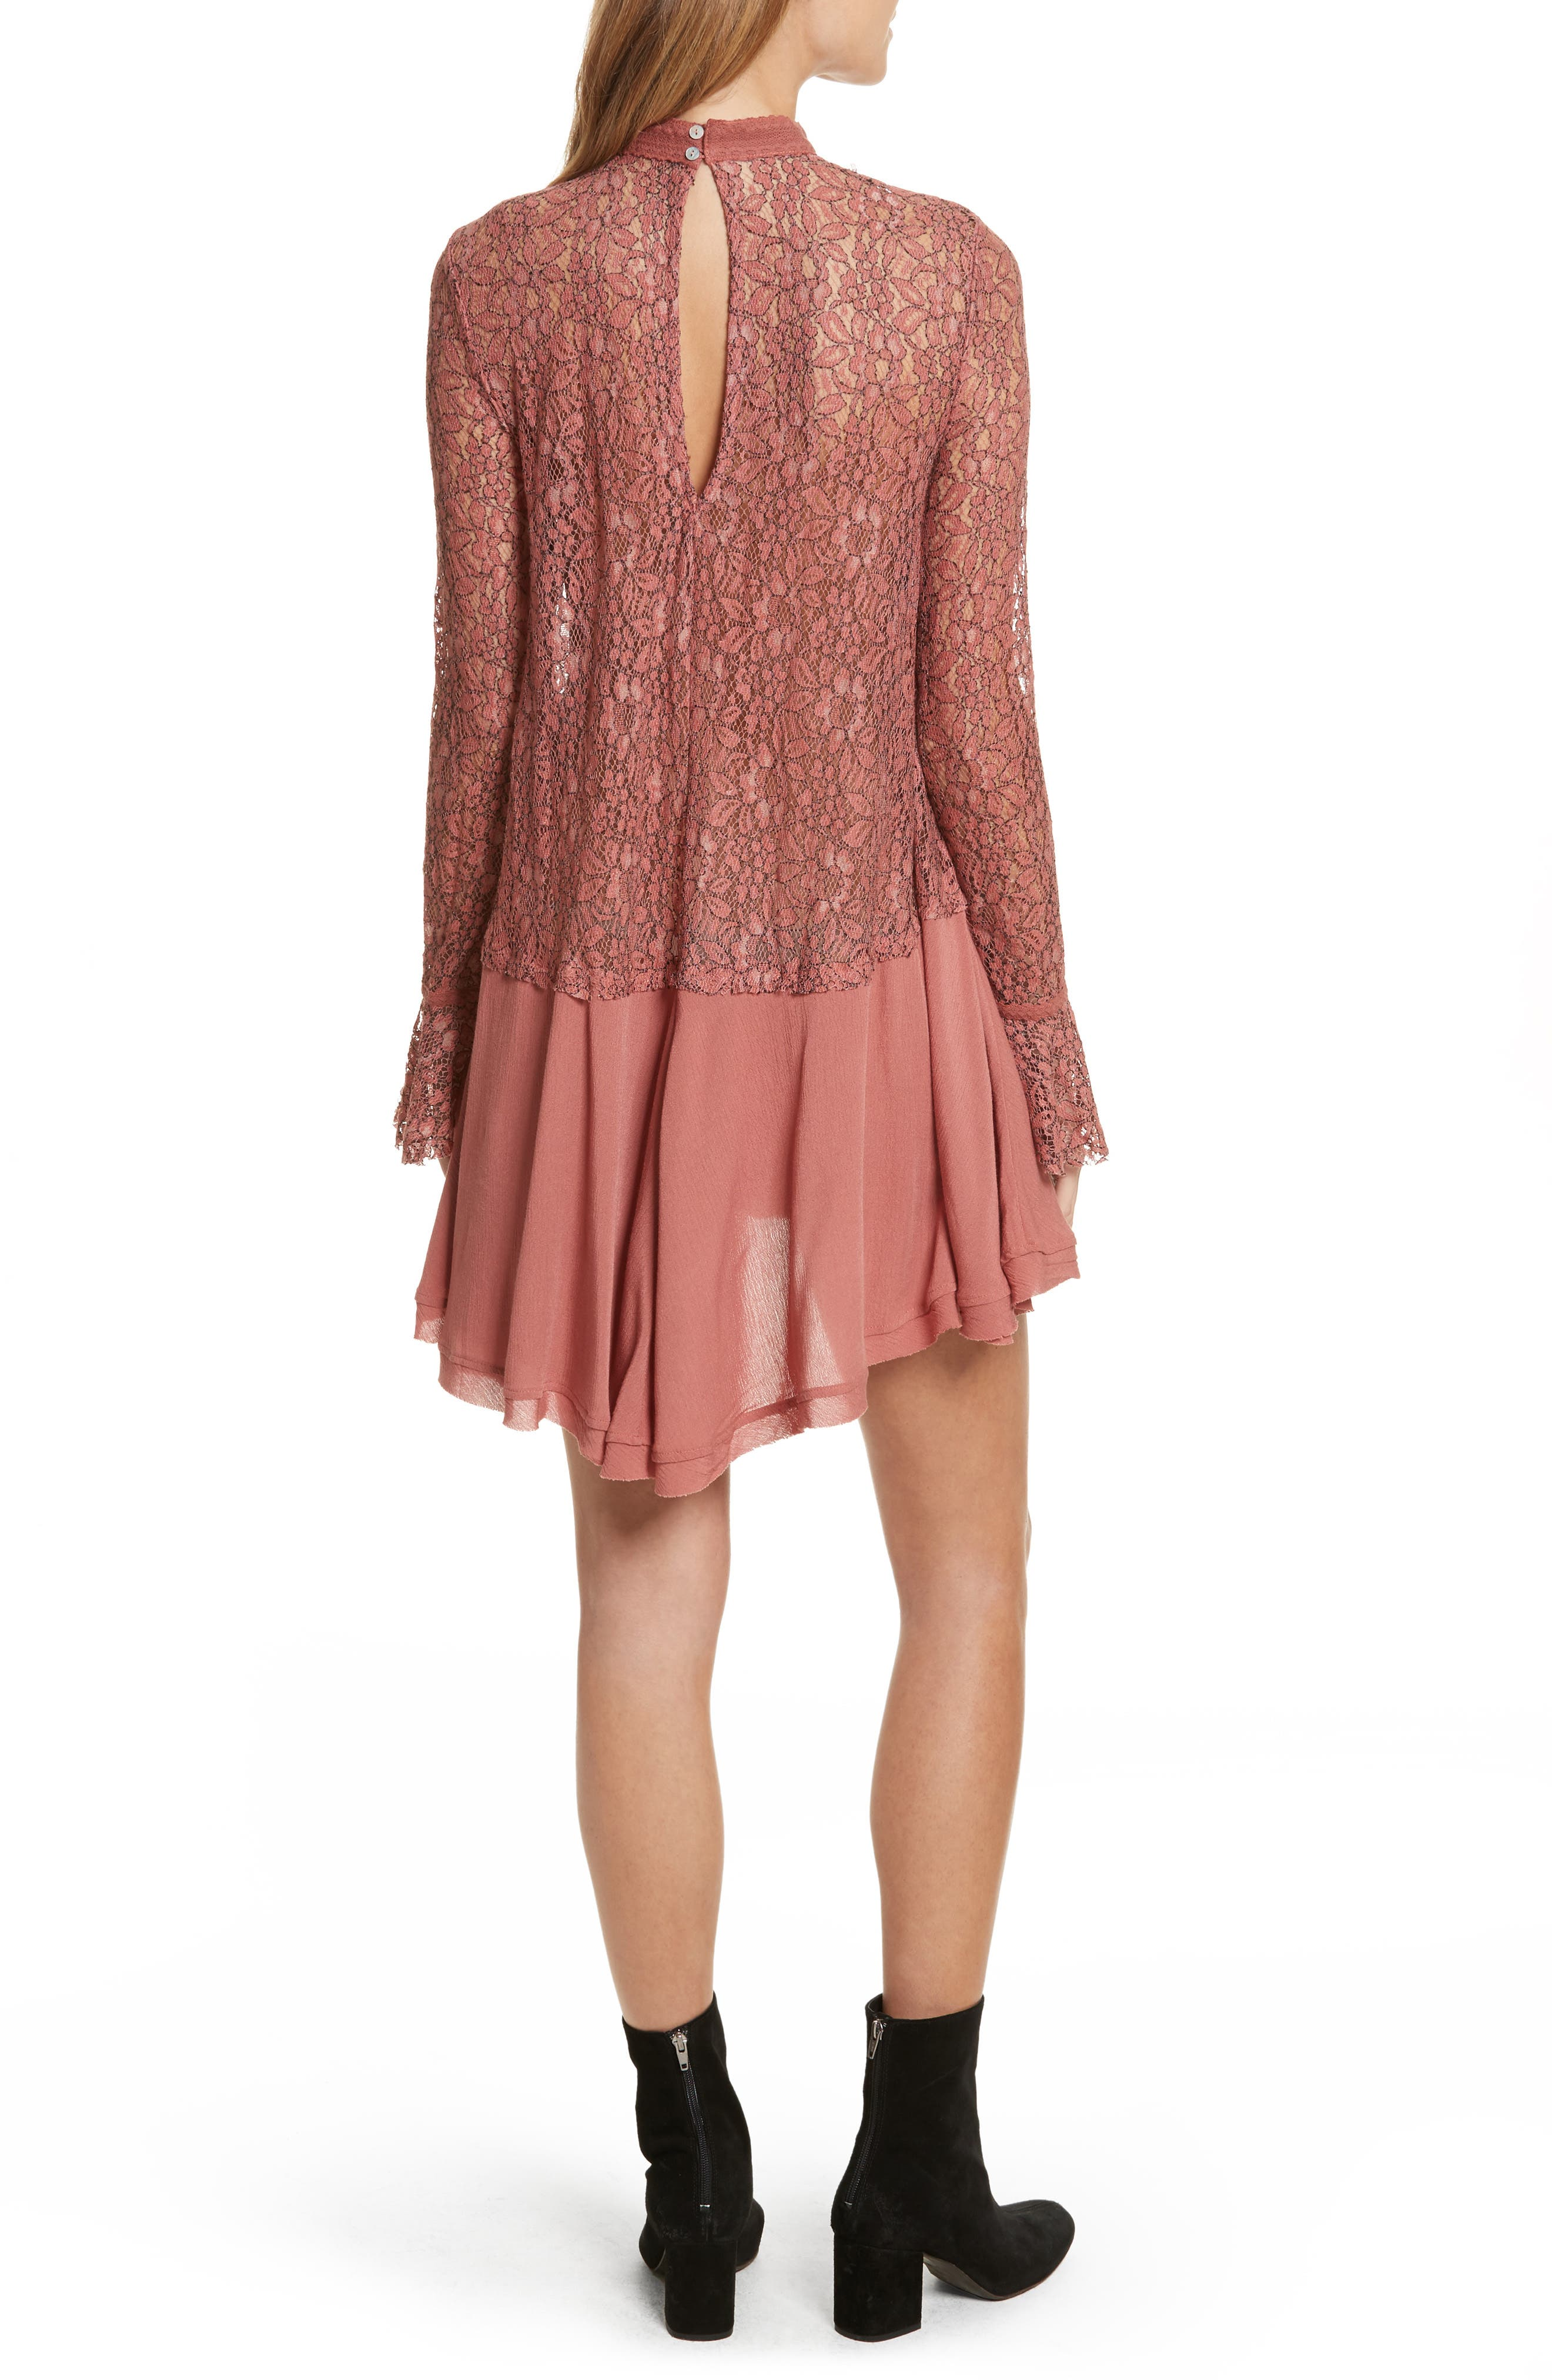 FREE PEOPLE,                             New Tell Tale Lace Minidress,                             Alternate thumbnail 2, color,                             605